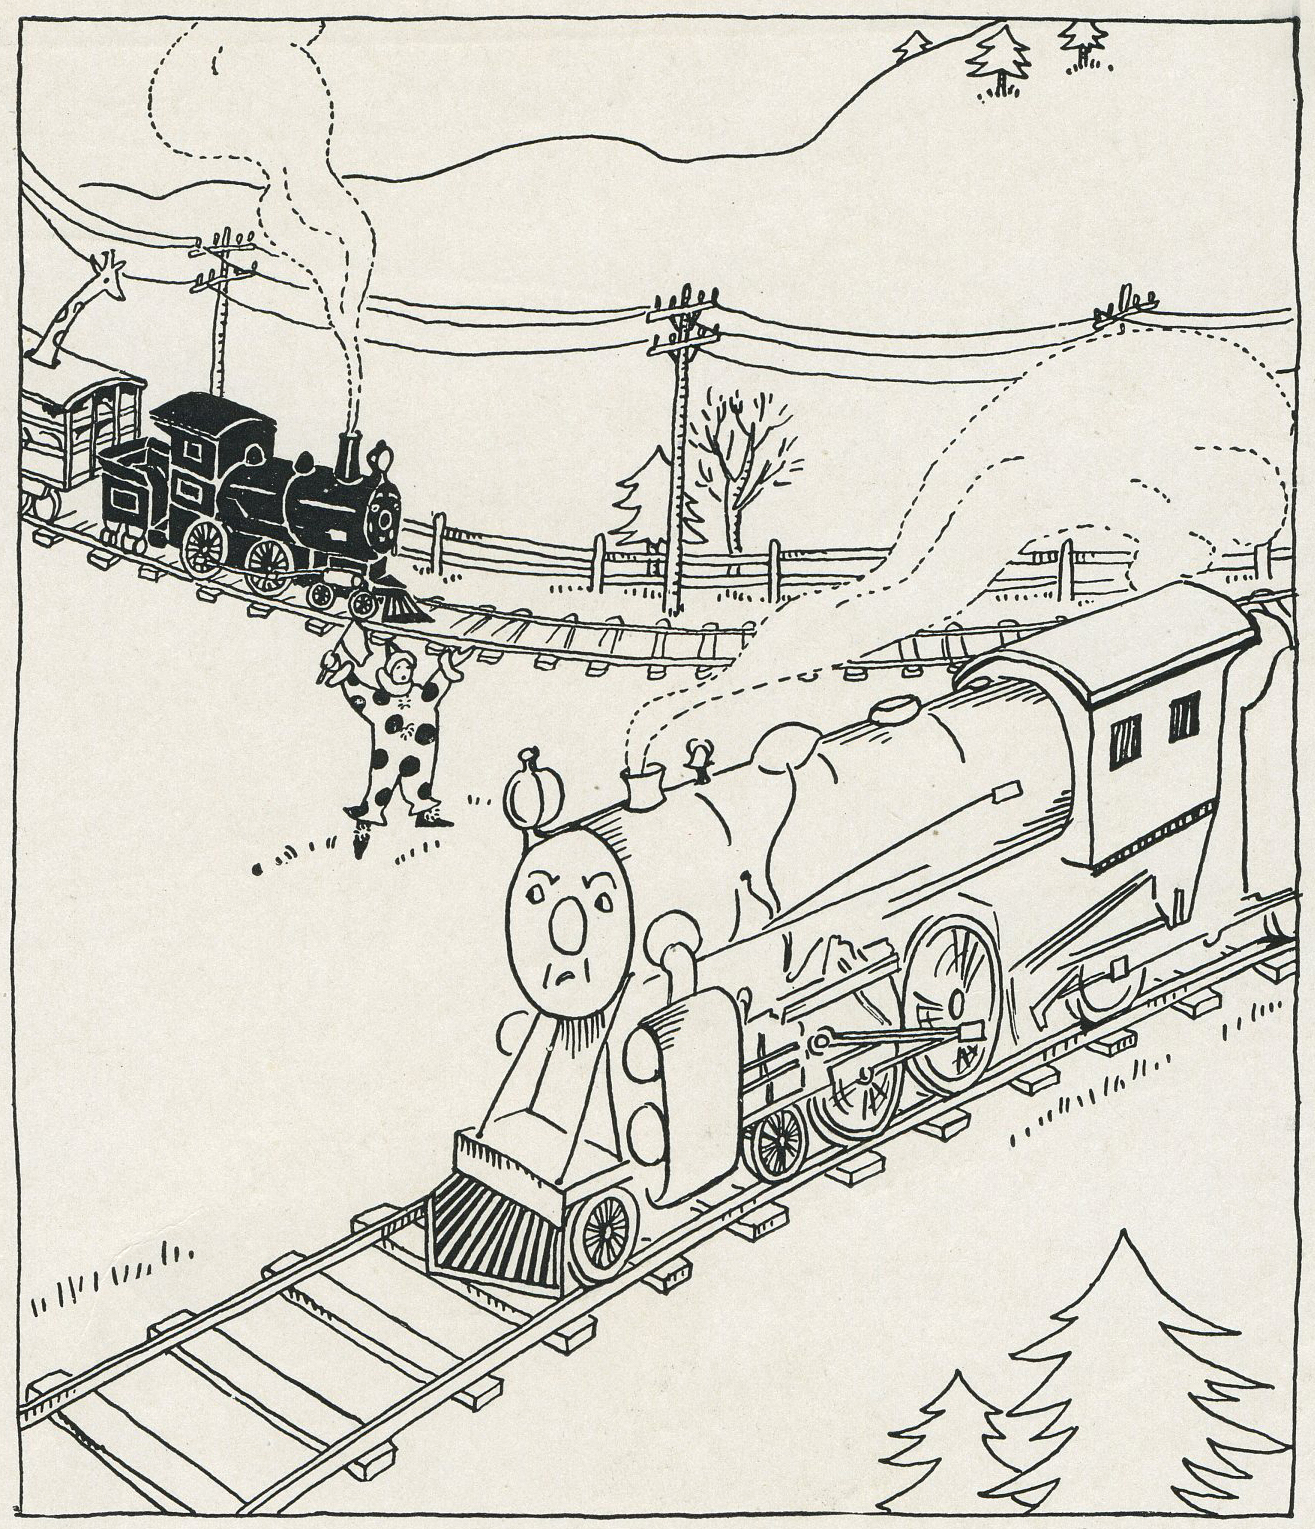 """The Big Strong Engine bellowed: 'I am a Freight Engine. I have just pulled a big train loaded with costly machines over the mountains. These machines print books and newspapers for grown-ups to read. I am a very important engine indeed. I won't carry the likes of you!' ... The little train and all the dolls and toys were very sad."""